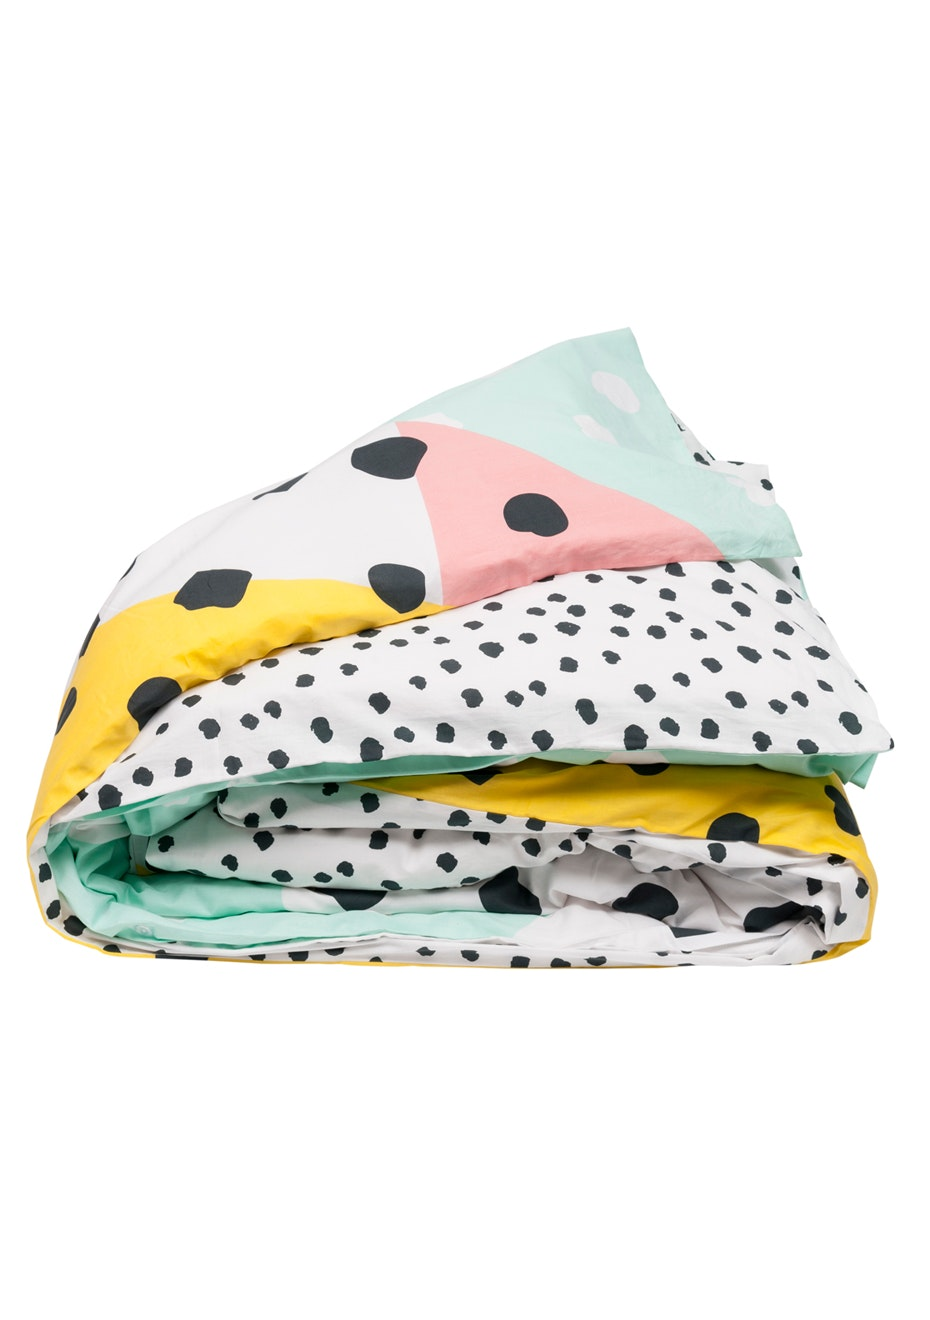 General Eclectic - Pebbles Duvet Cover - King Single